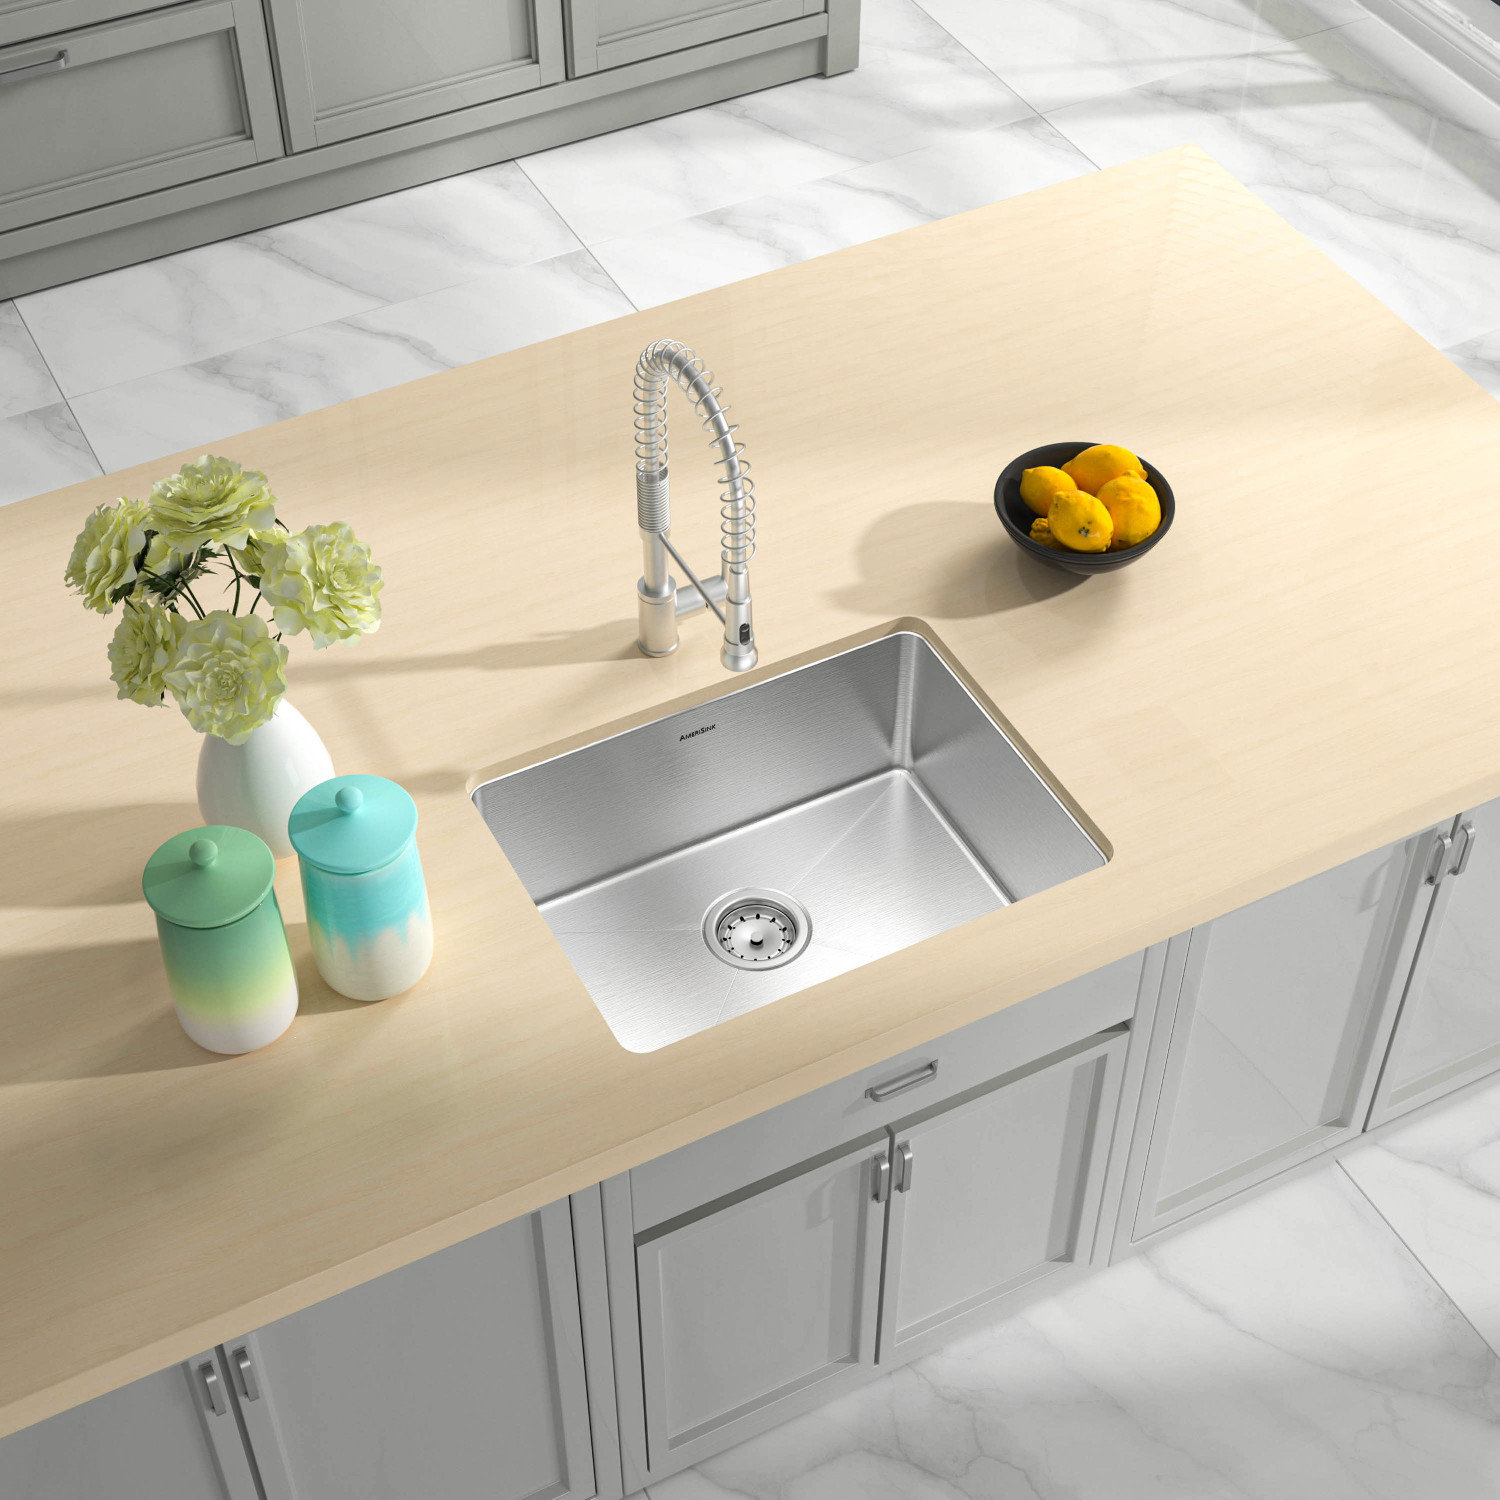 ADA Compliant, Single Bowl Undermount Legend Stainless Steel Kitchen Sink